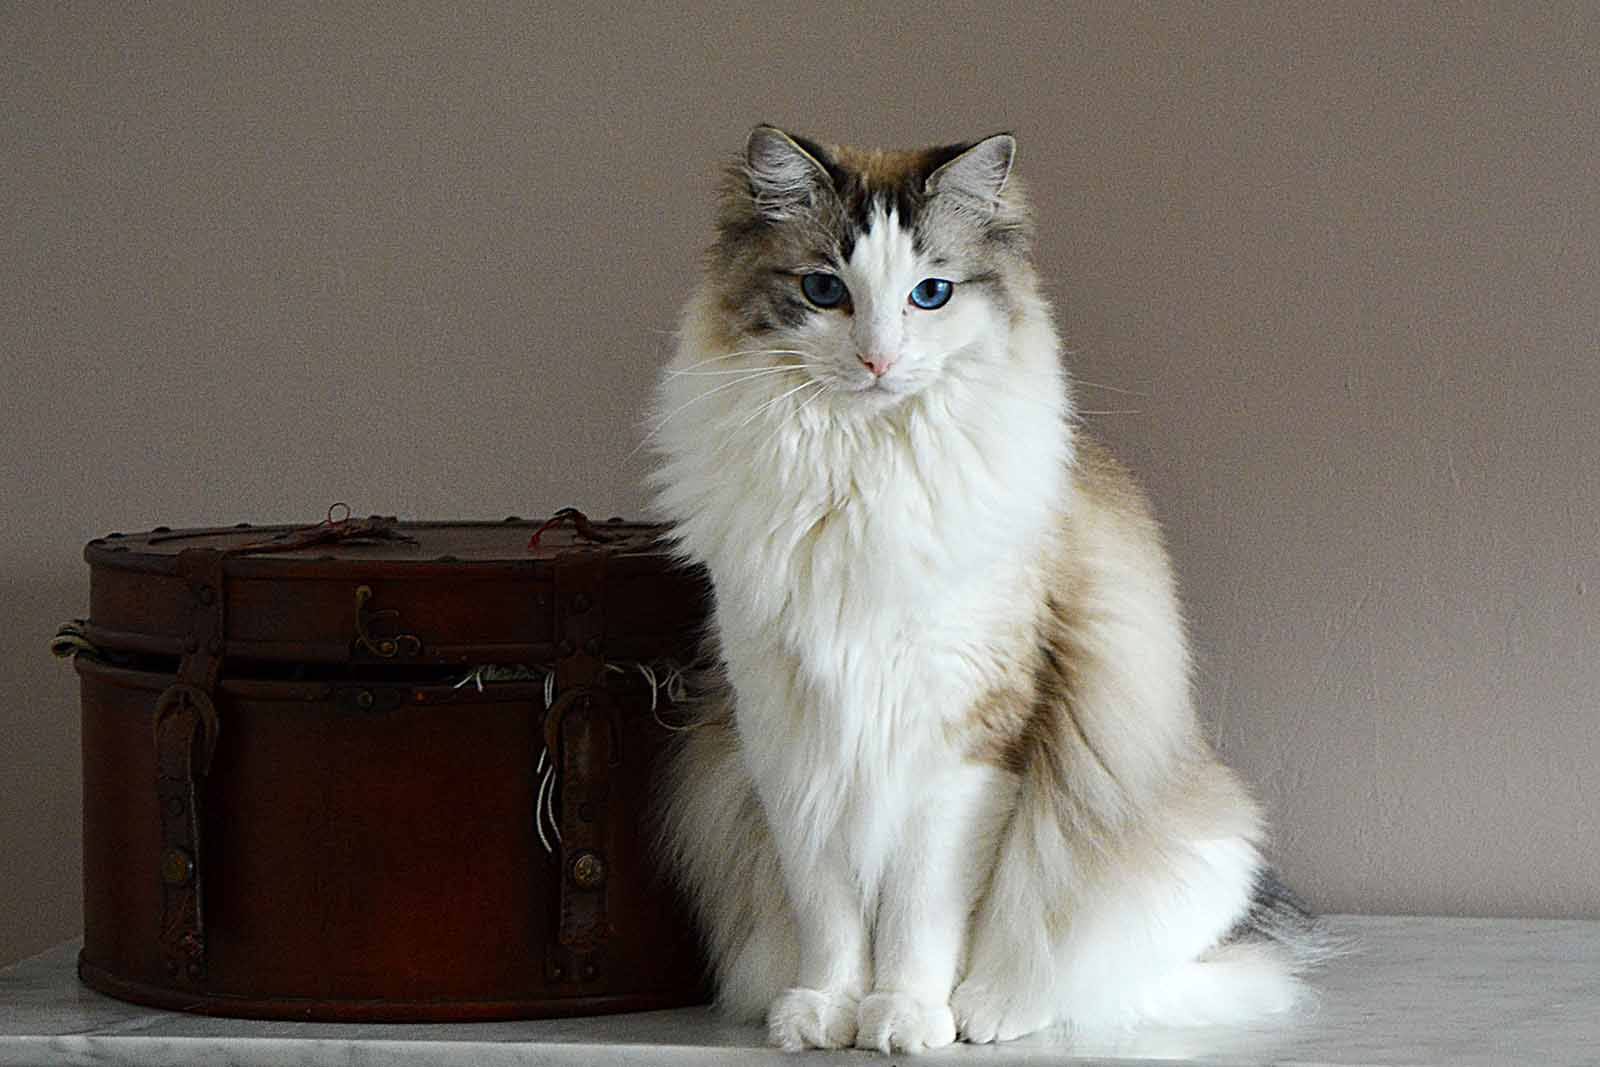 You can easily name 5 dog breeds off the top of your head, but what about 5 cat breeds? These lovable large cat breeds are perfect quarantine partners.